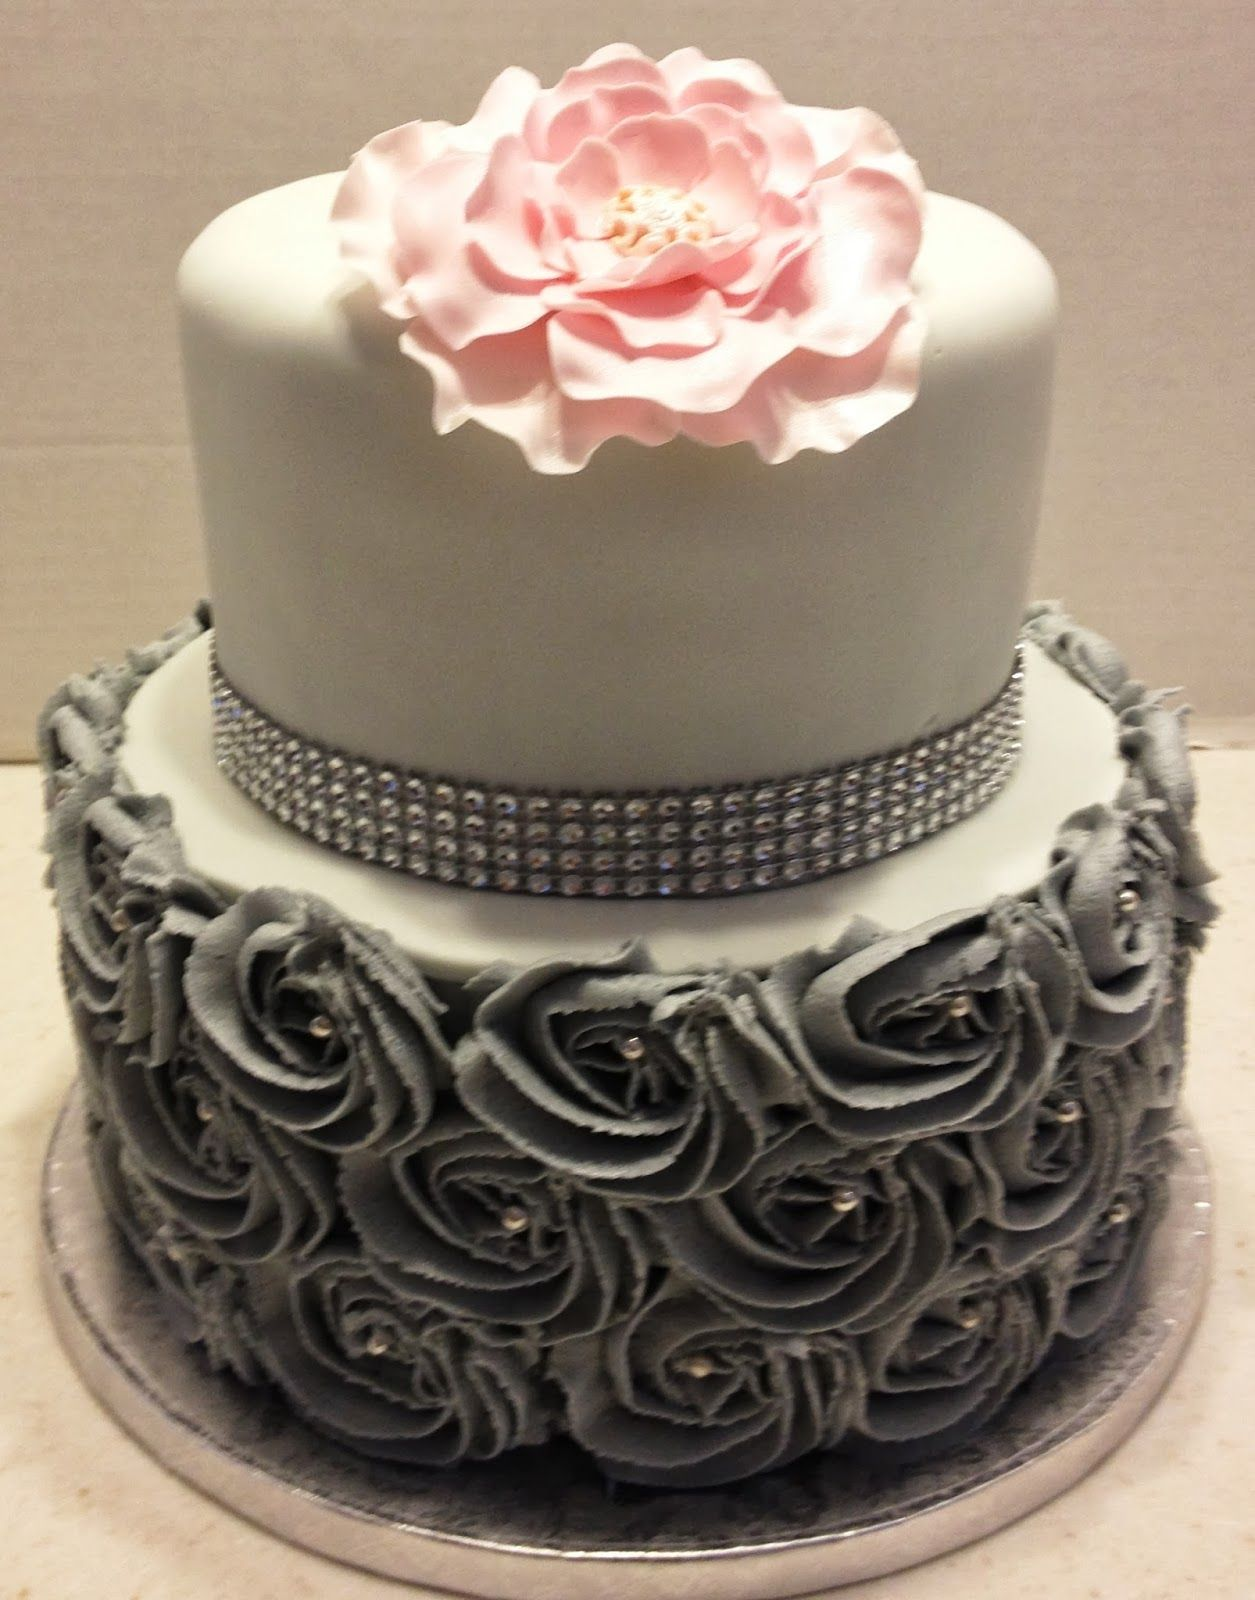 60th birthday cake This cake design was requested from a